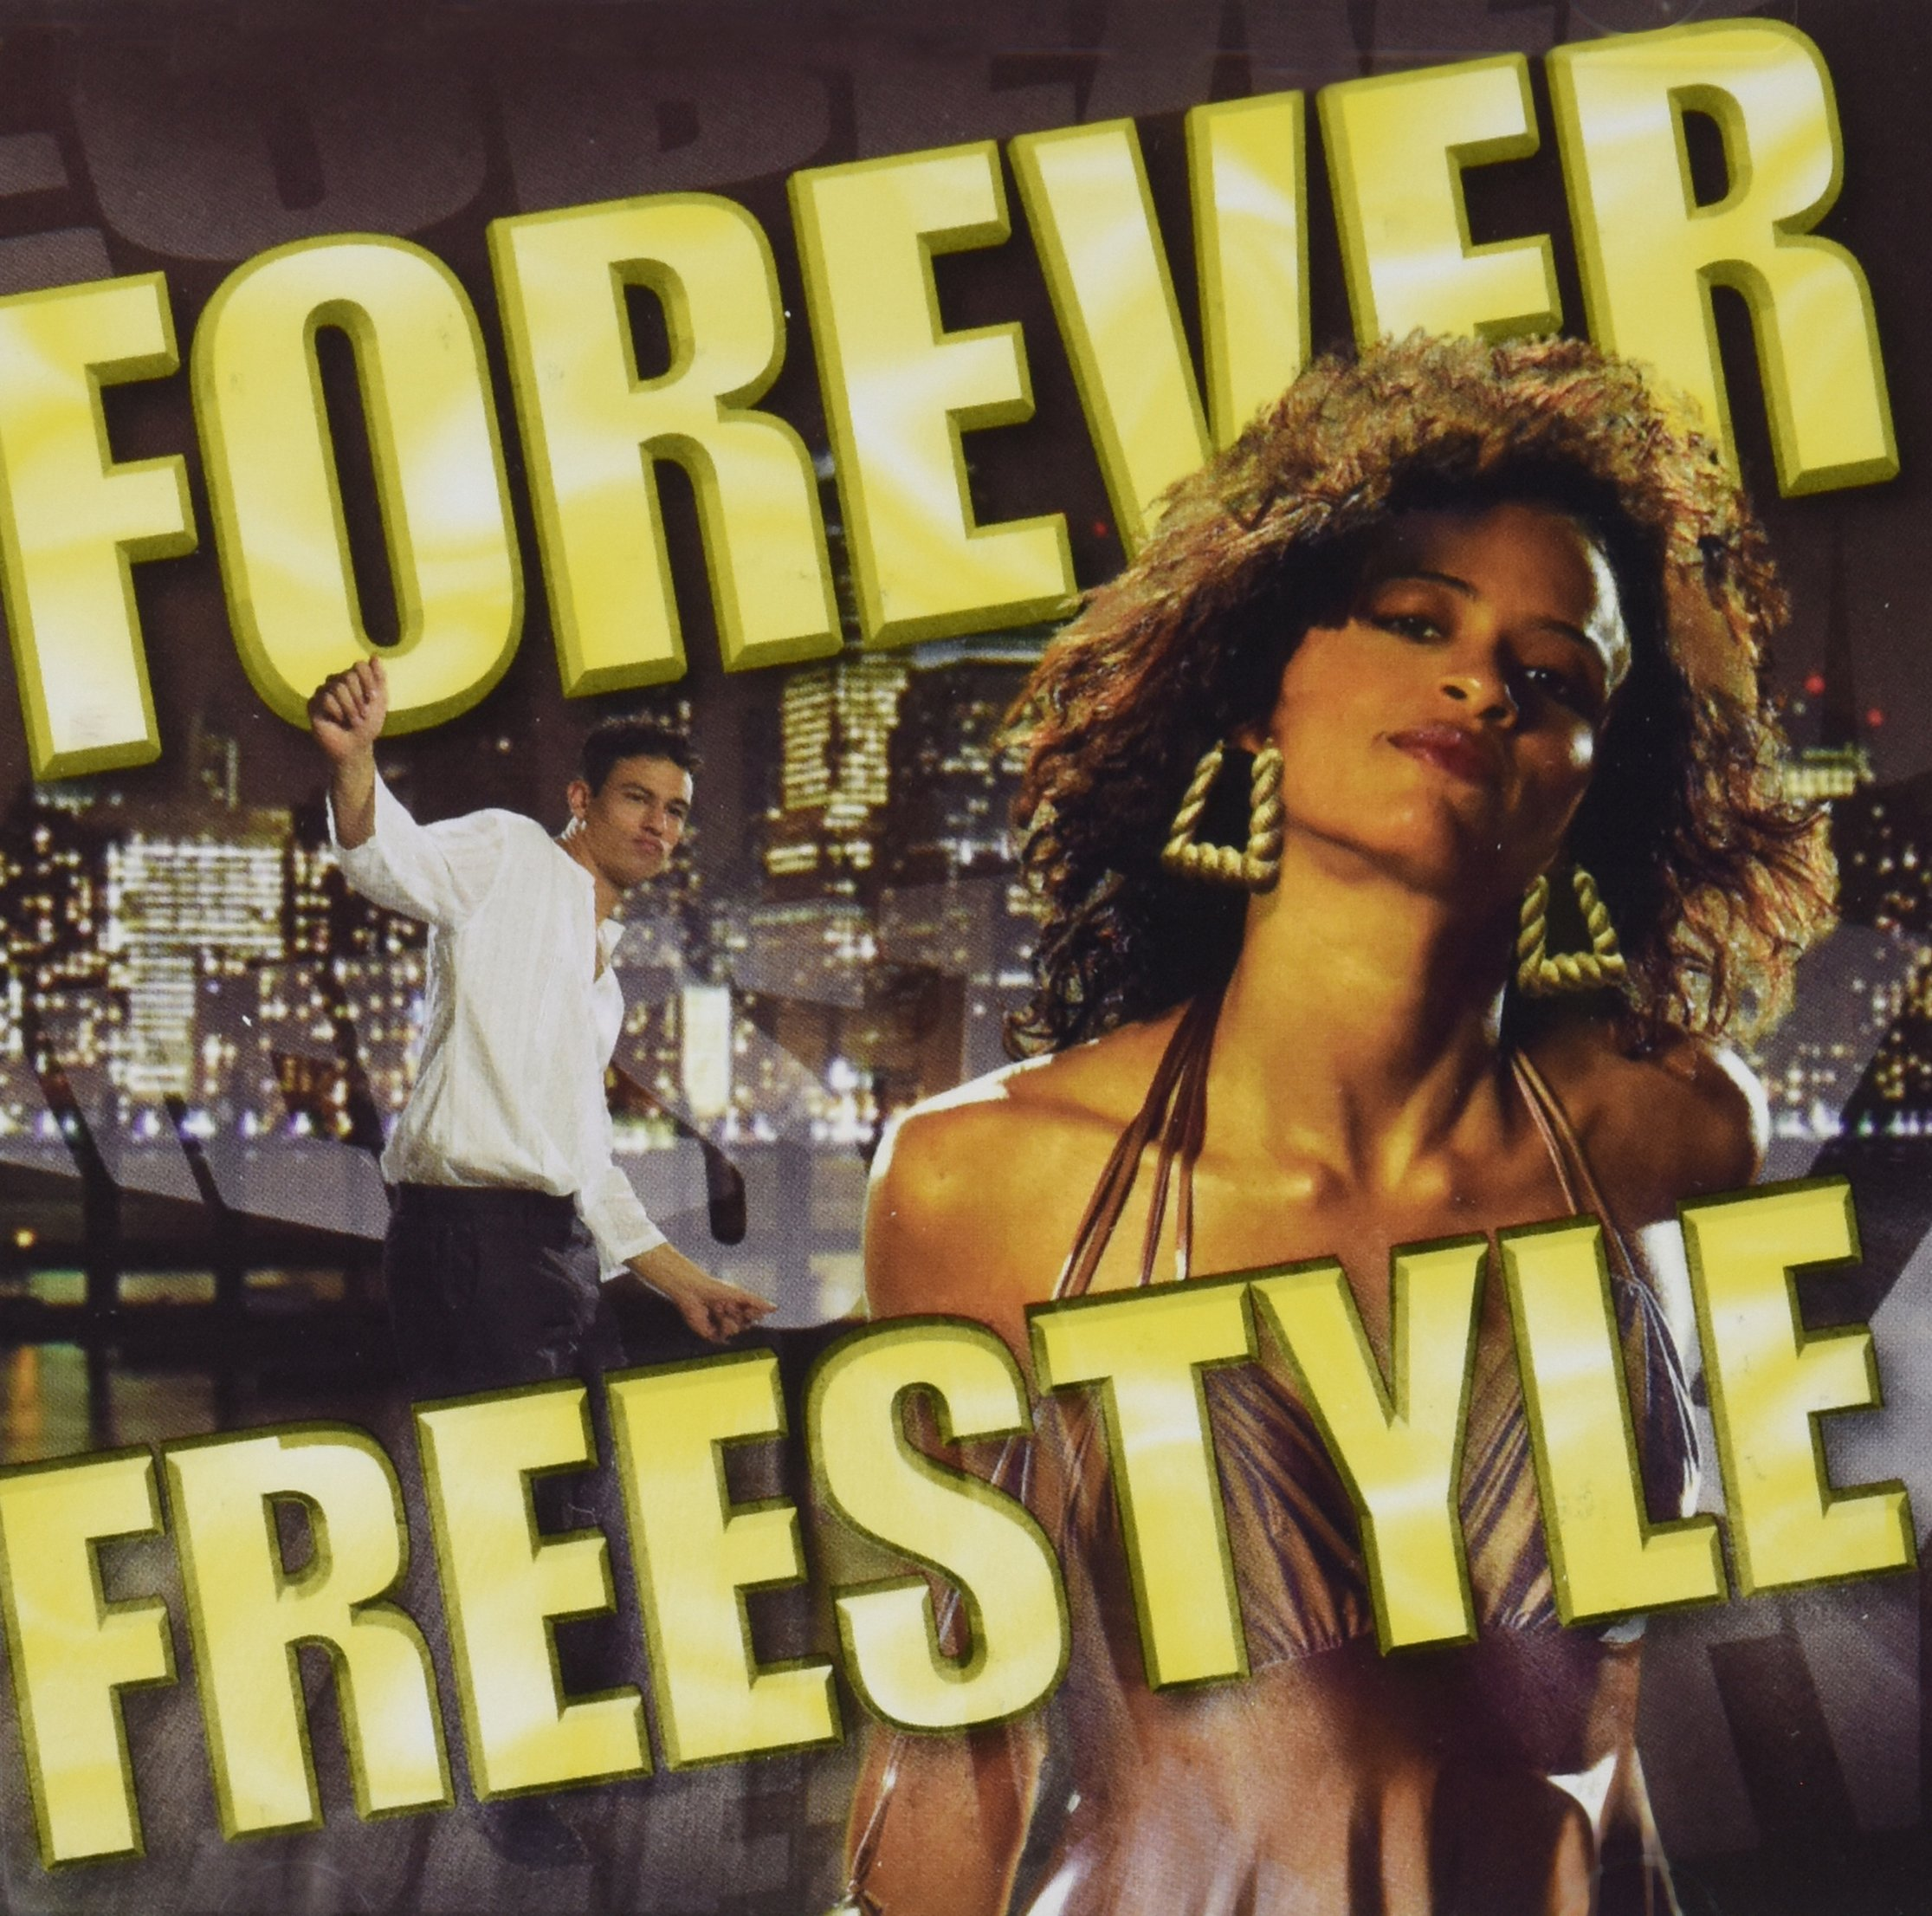 Forever Freestyle by Razor & Tie